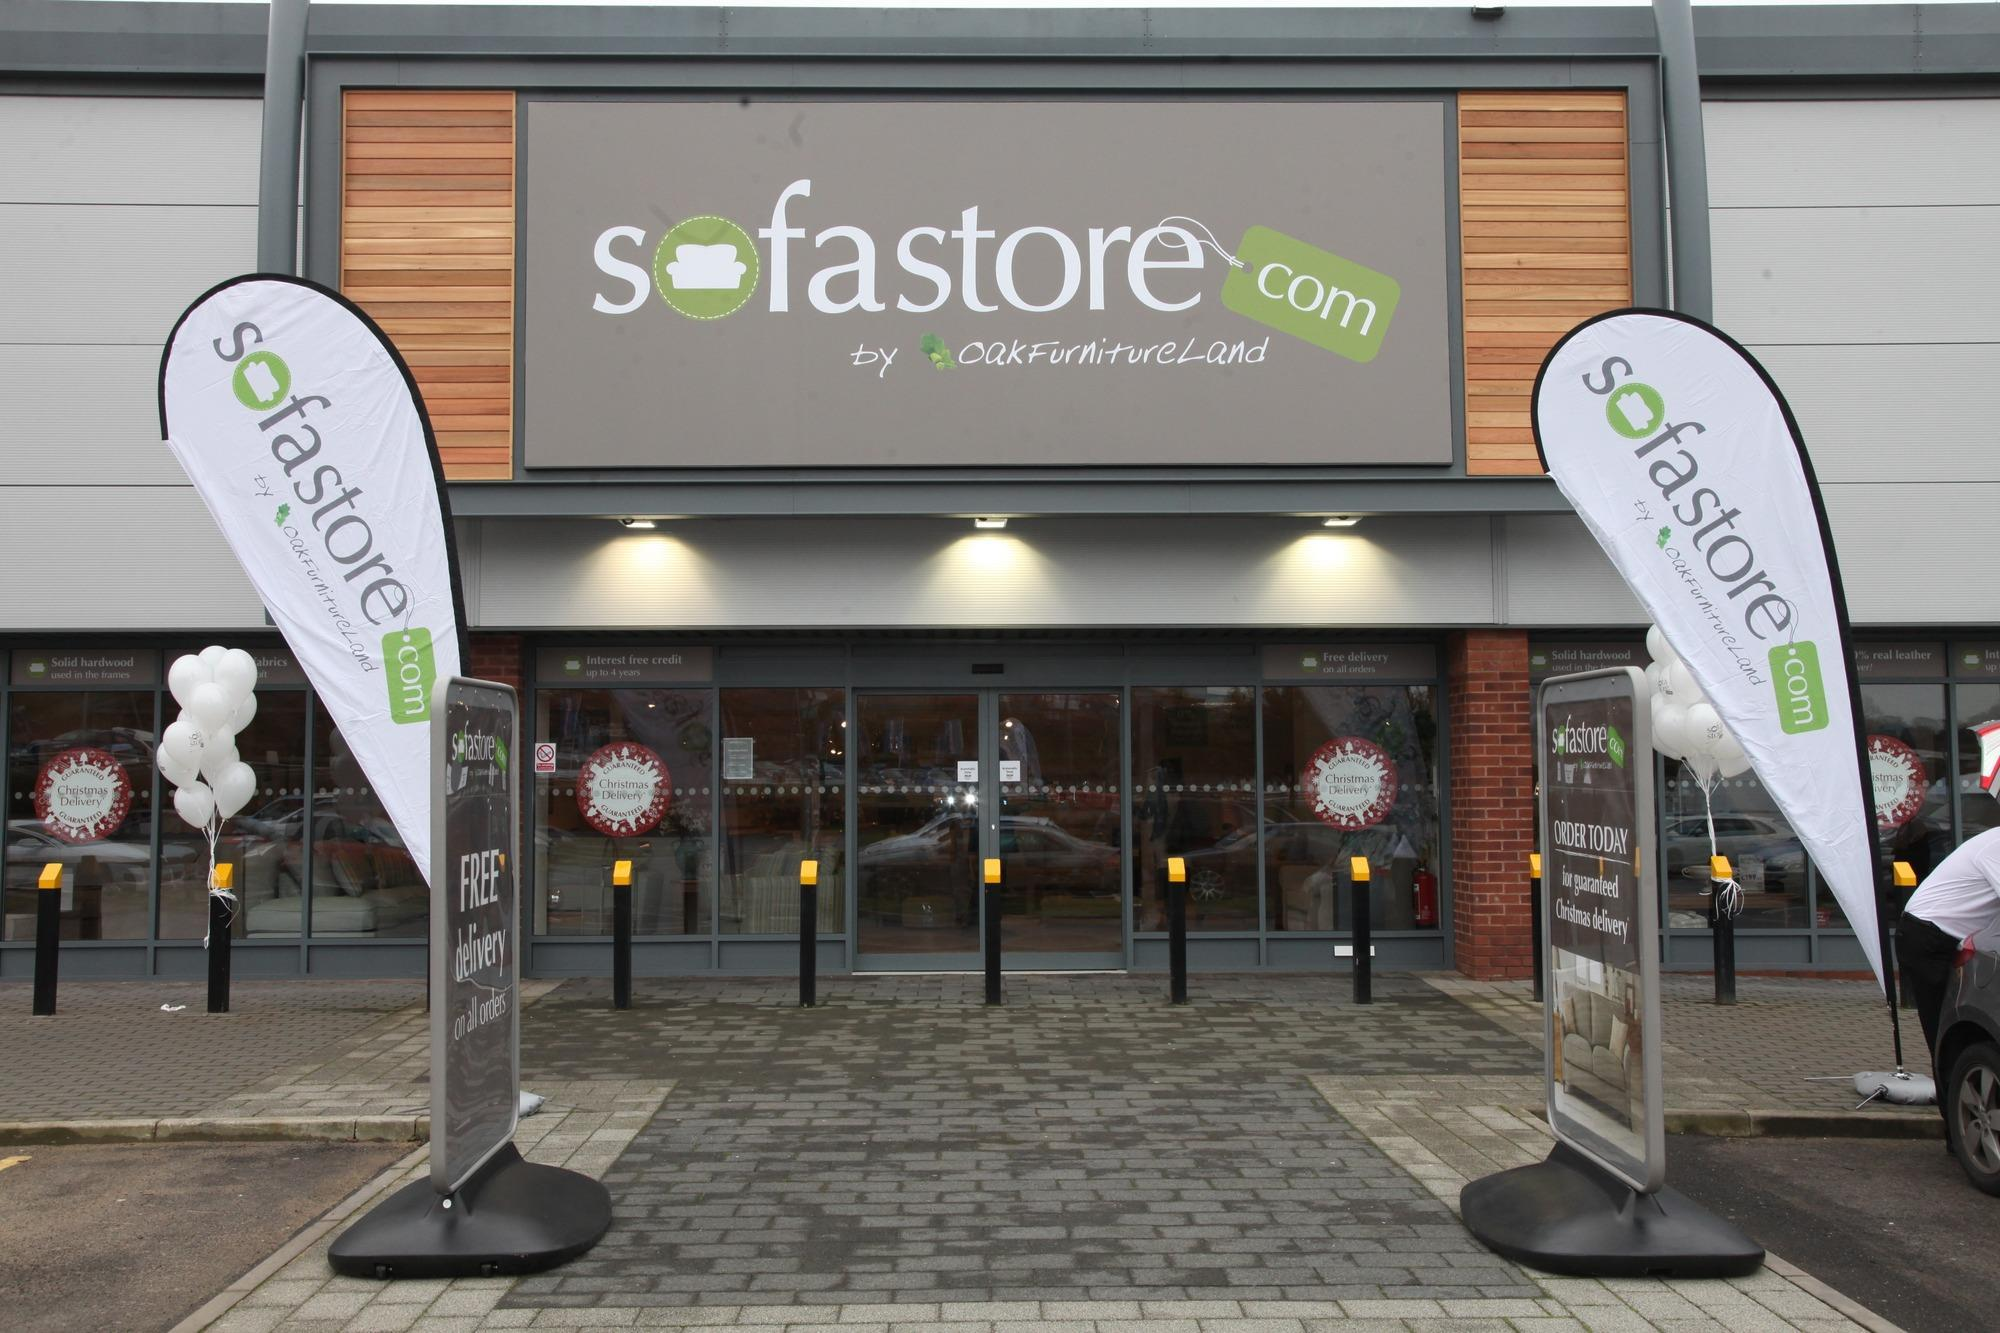 Oak Furniture Land To Open 57 Sofa Showrooms By Boxing Day | News | Retail  Week